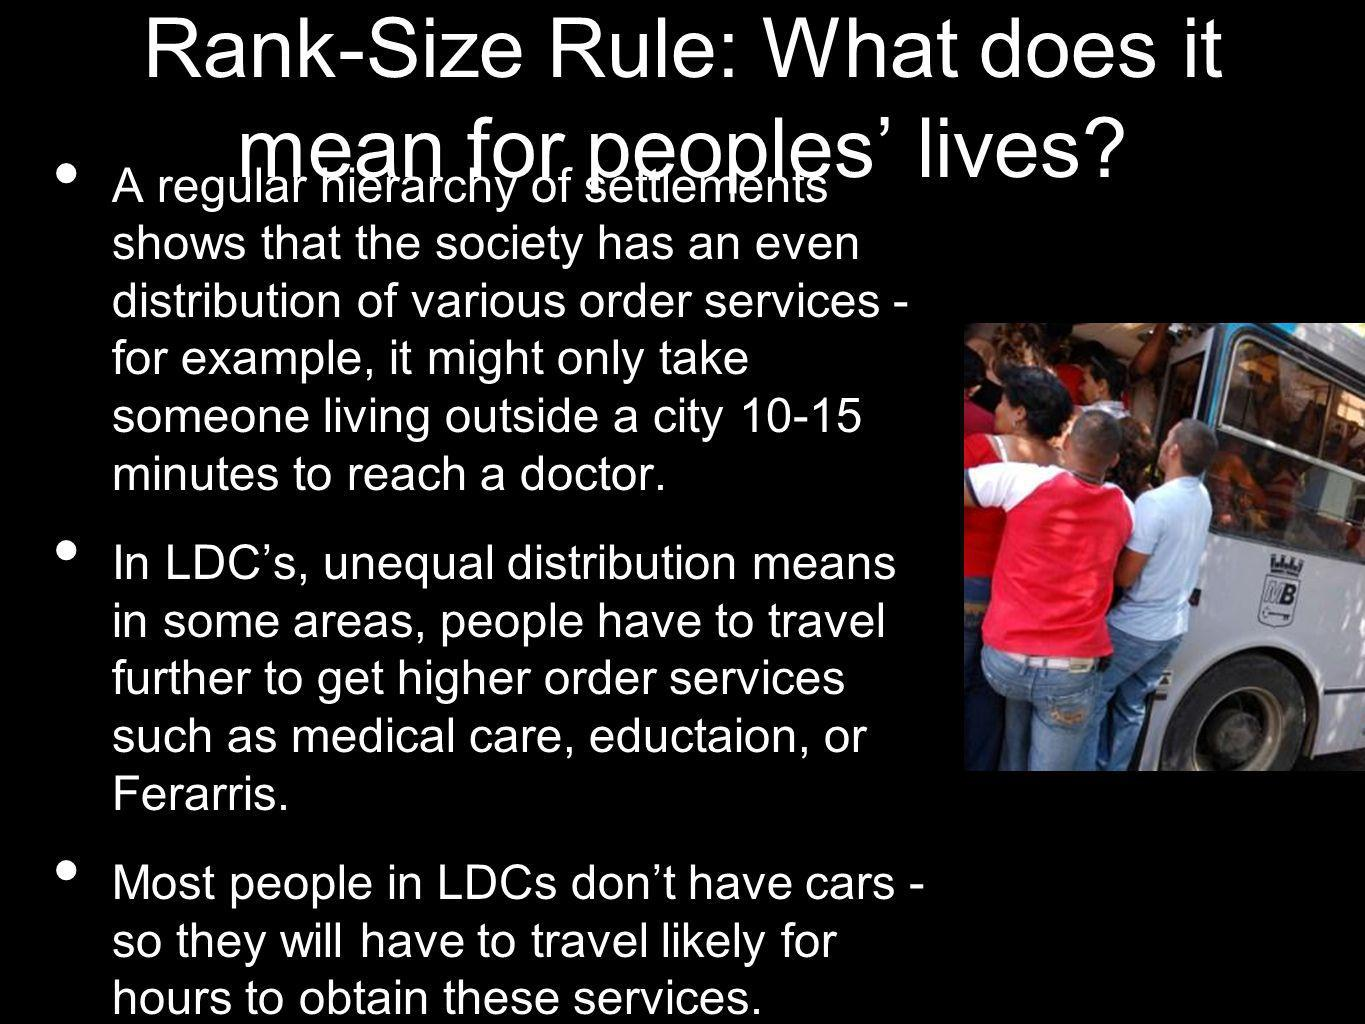 Rank-Size Rule: What does it mean for peoples' lives